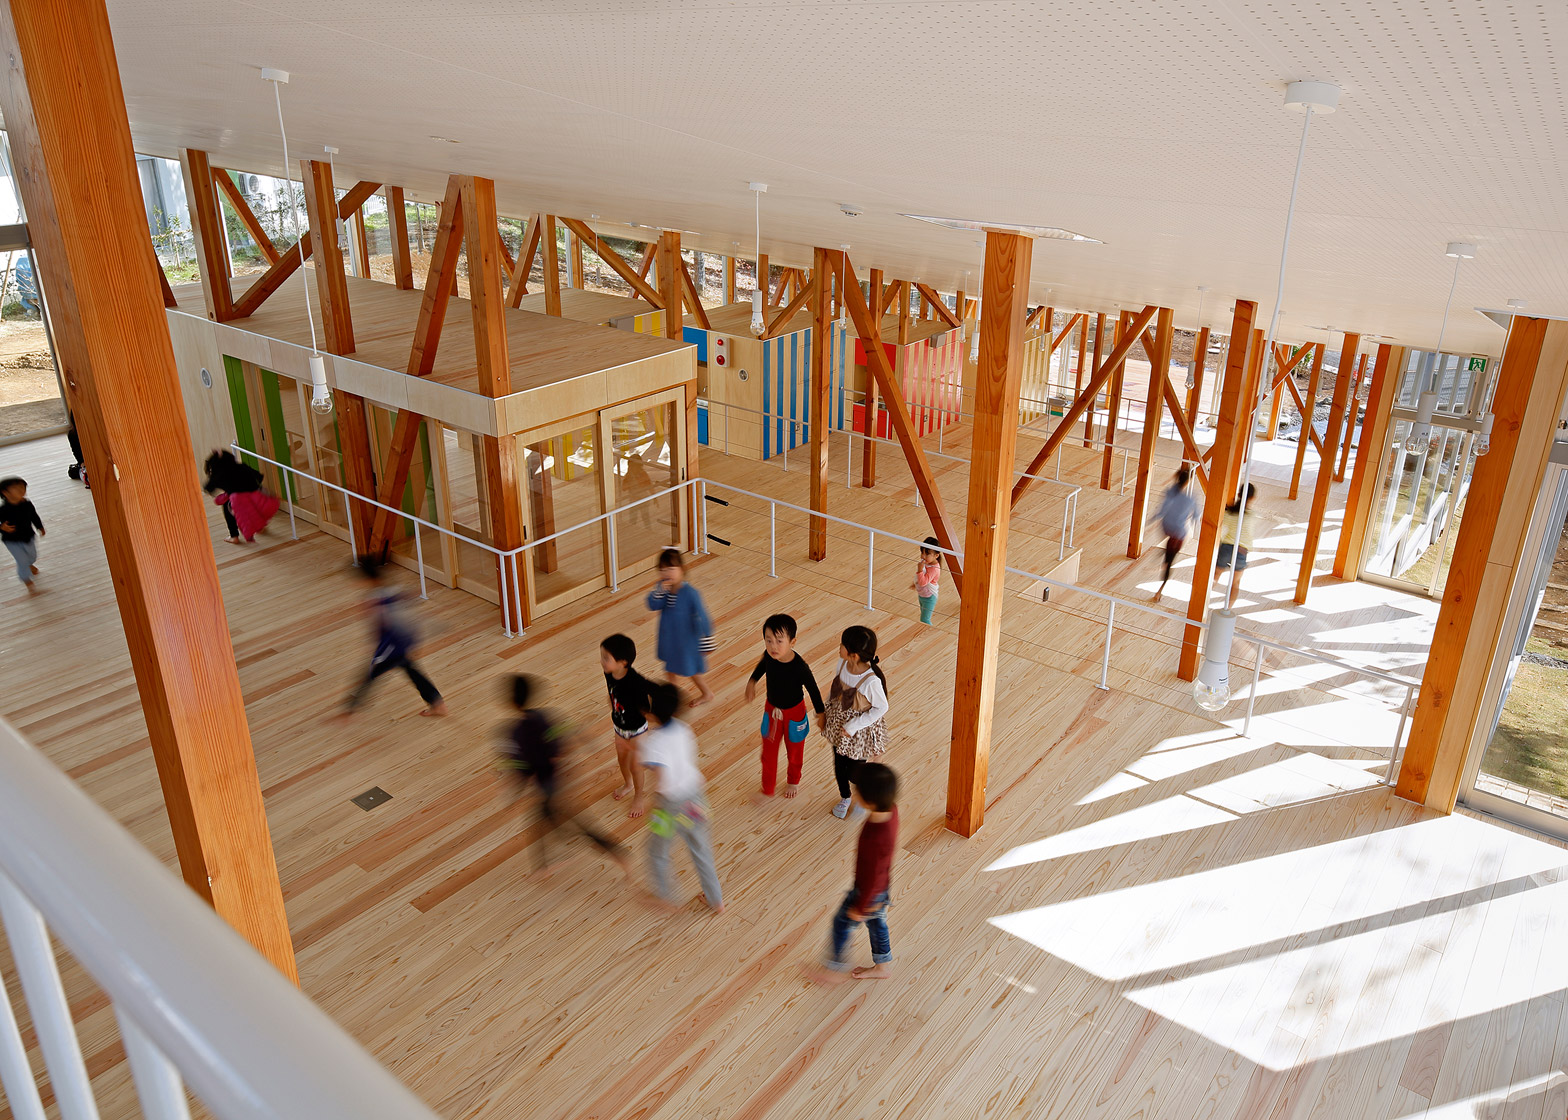 Hakusui nursery school yamazaki kentaro design workshop dezeen 1568 2